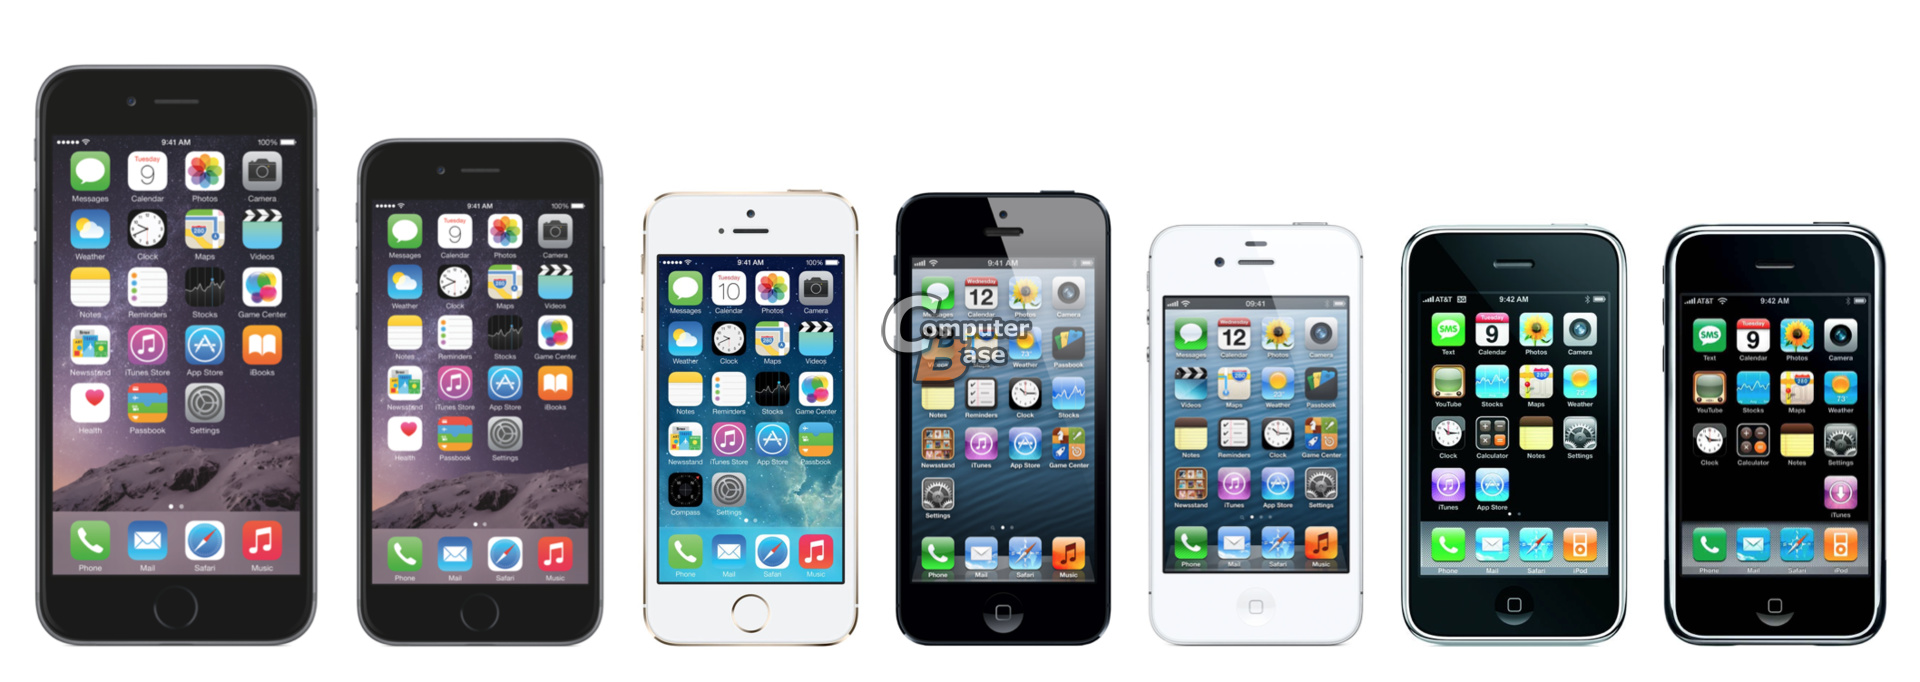 v.l.n.r.: iPhone 6 (Plus) , 5S, 5, 4S/4, 3GS/3G und iPhone (Front)